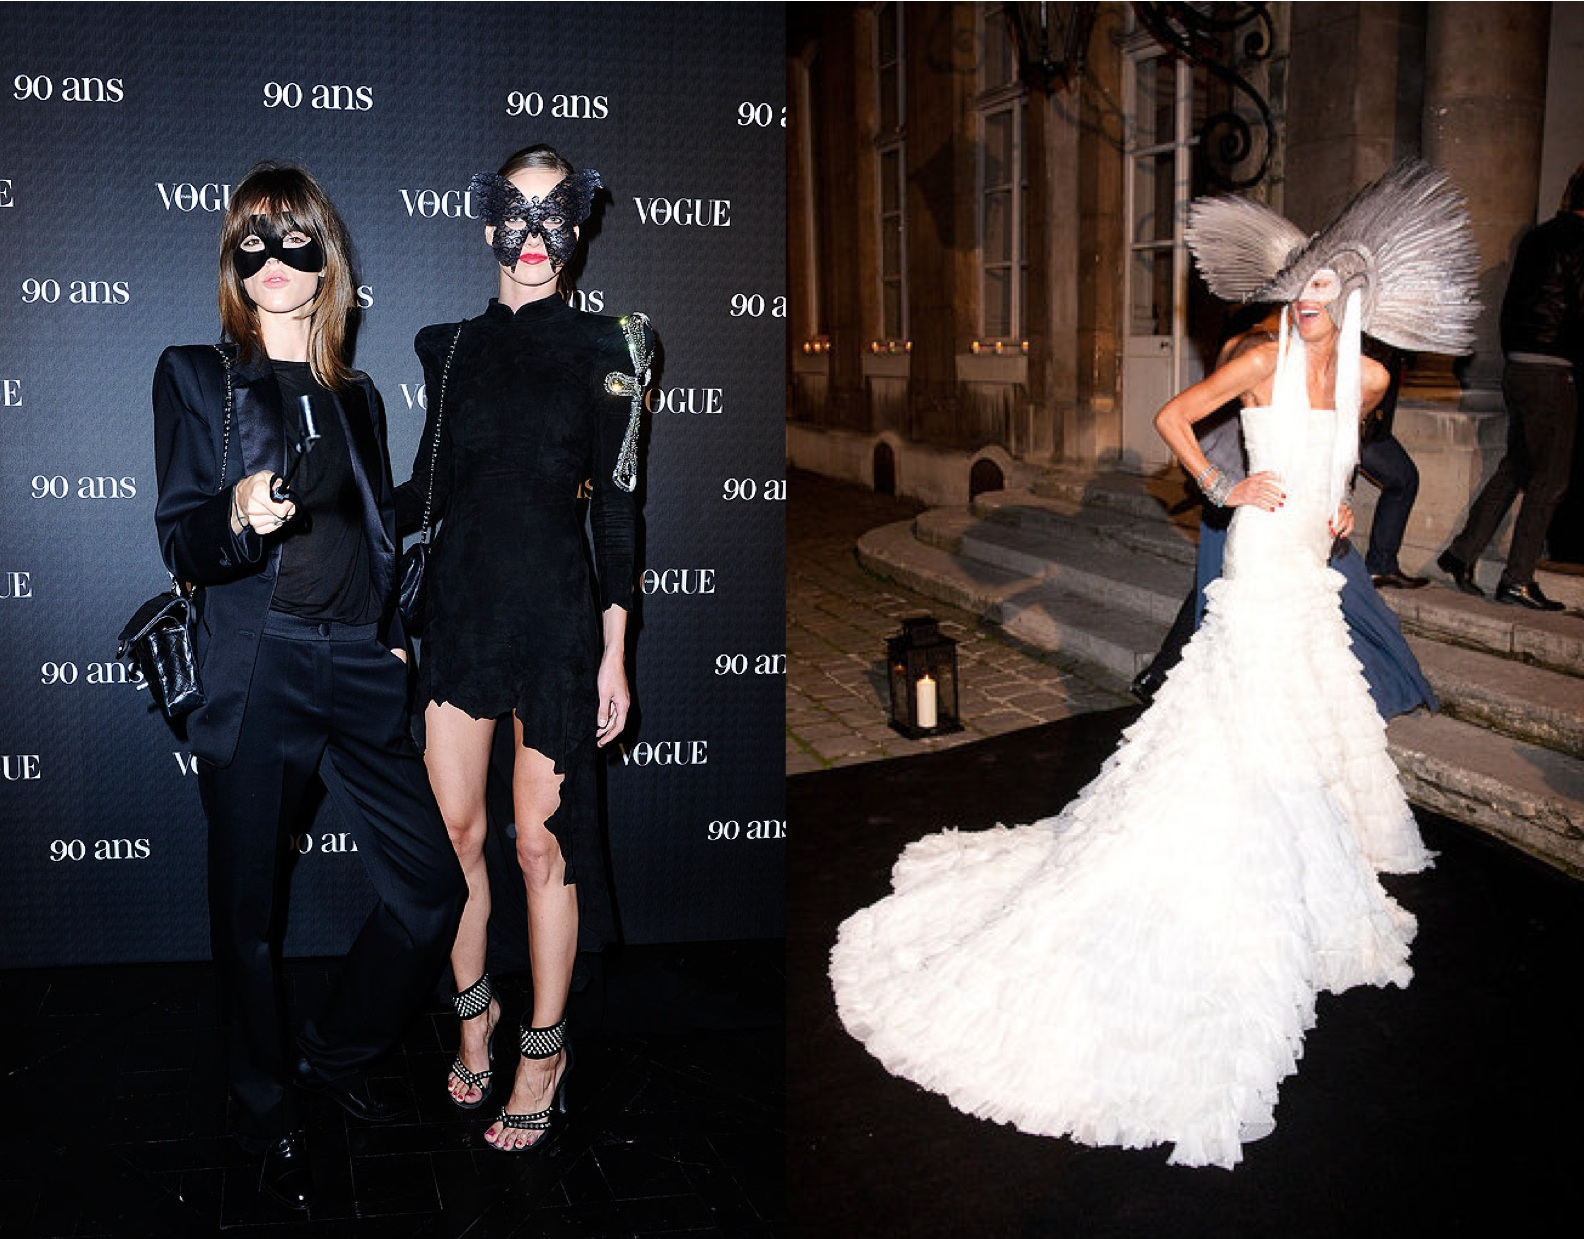 Outstanding Vogue Paris Masquerade Ball 1584 x 1239 · 522 kB · jpeg